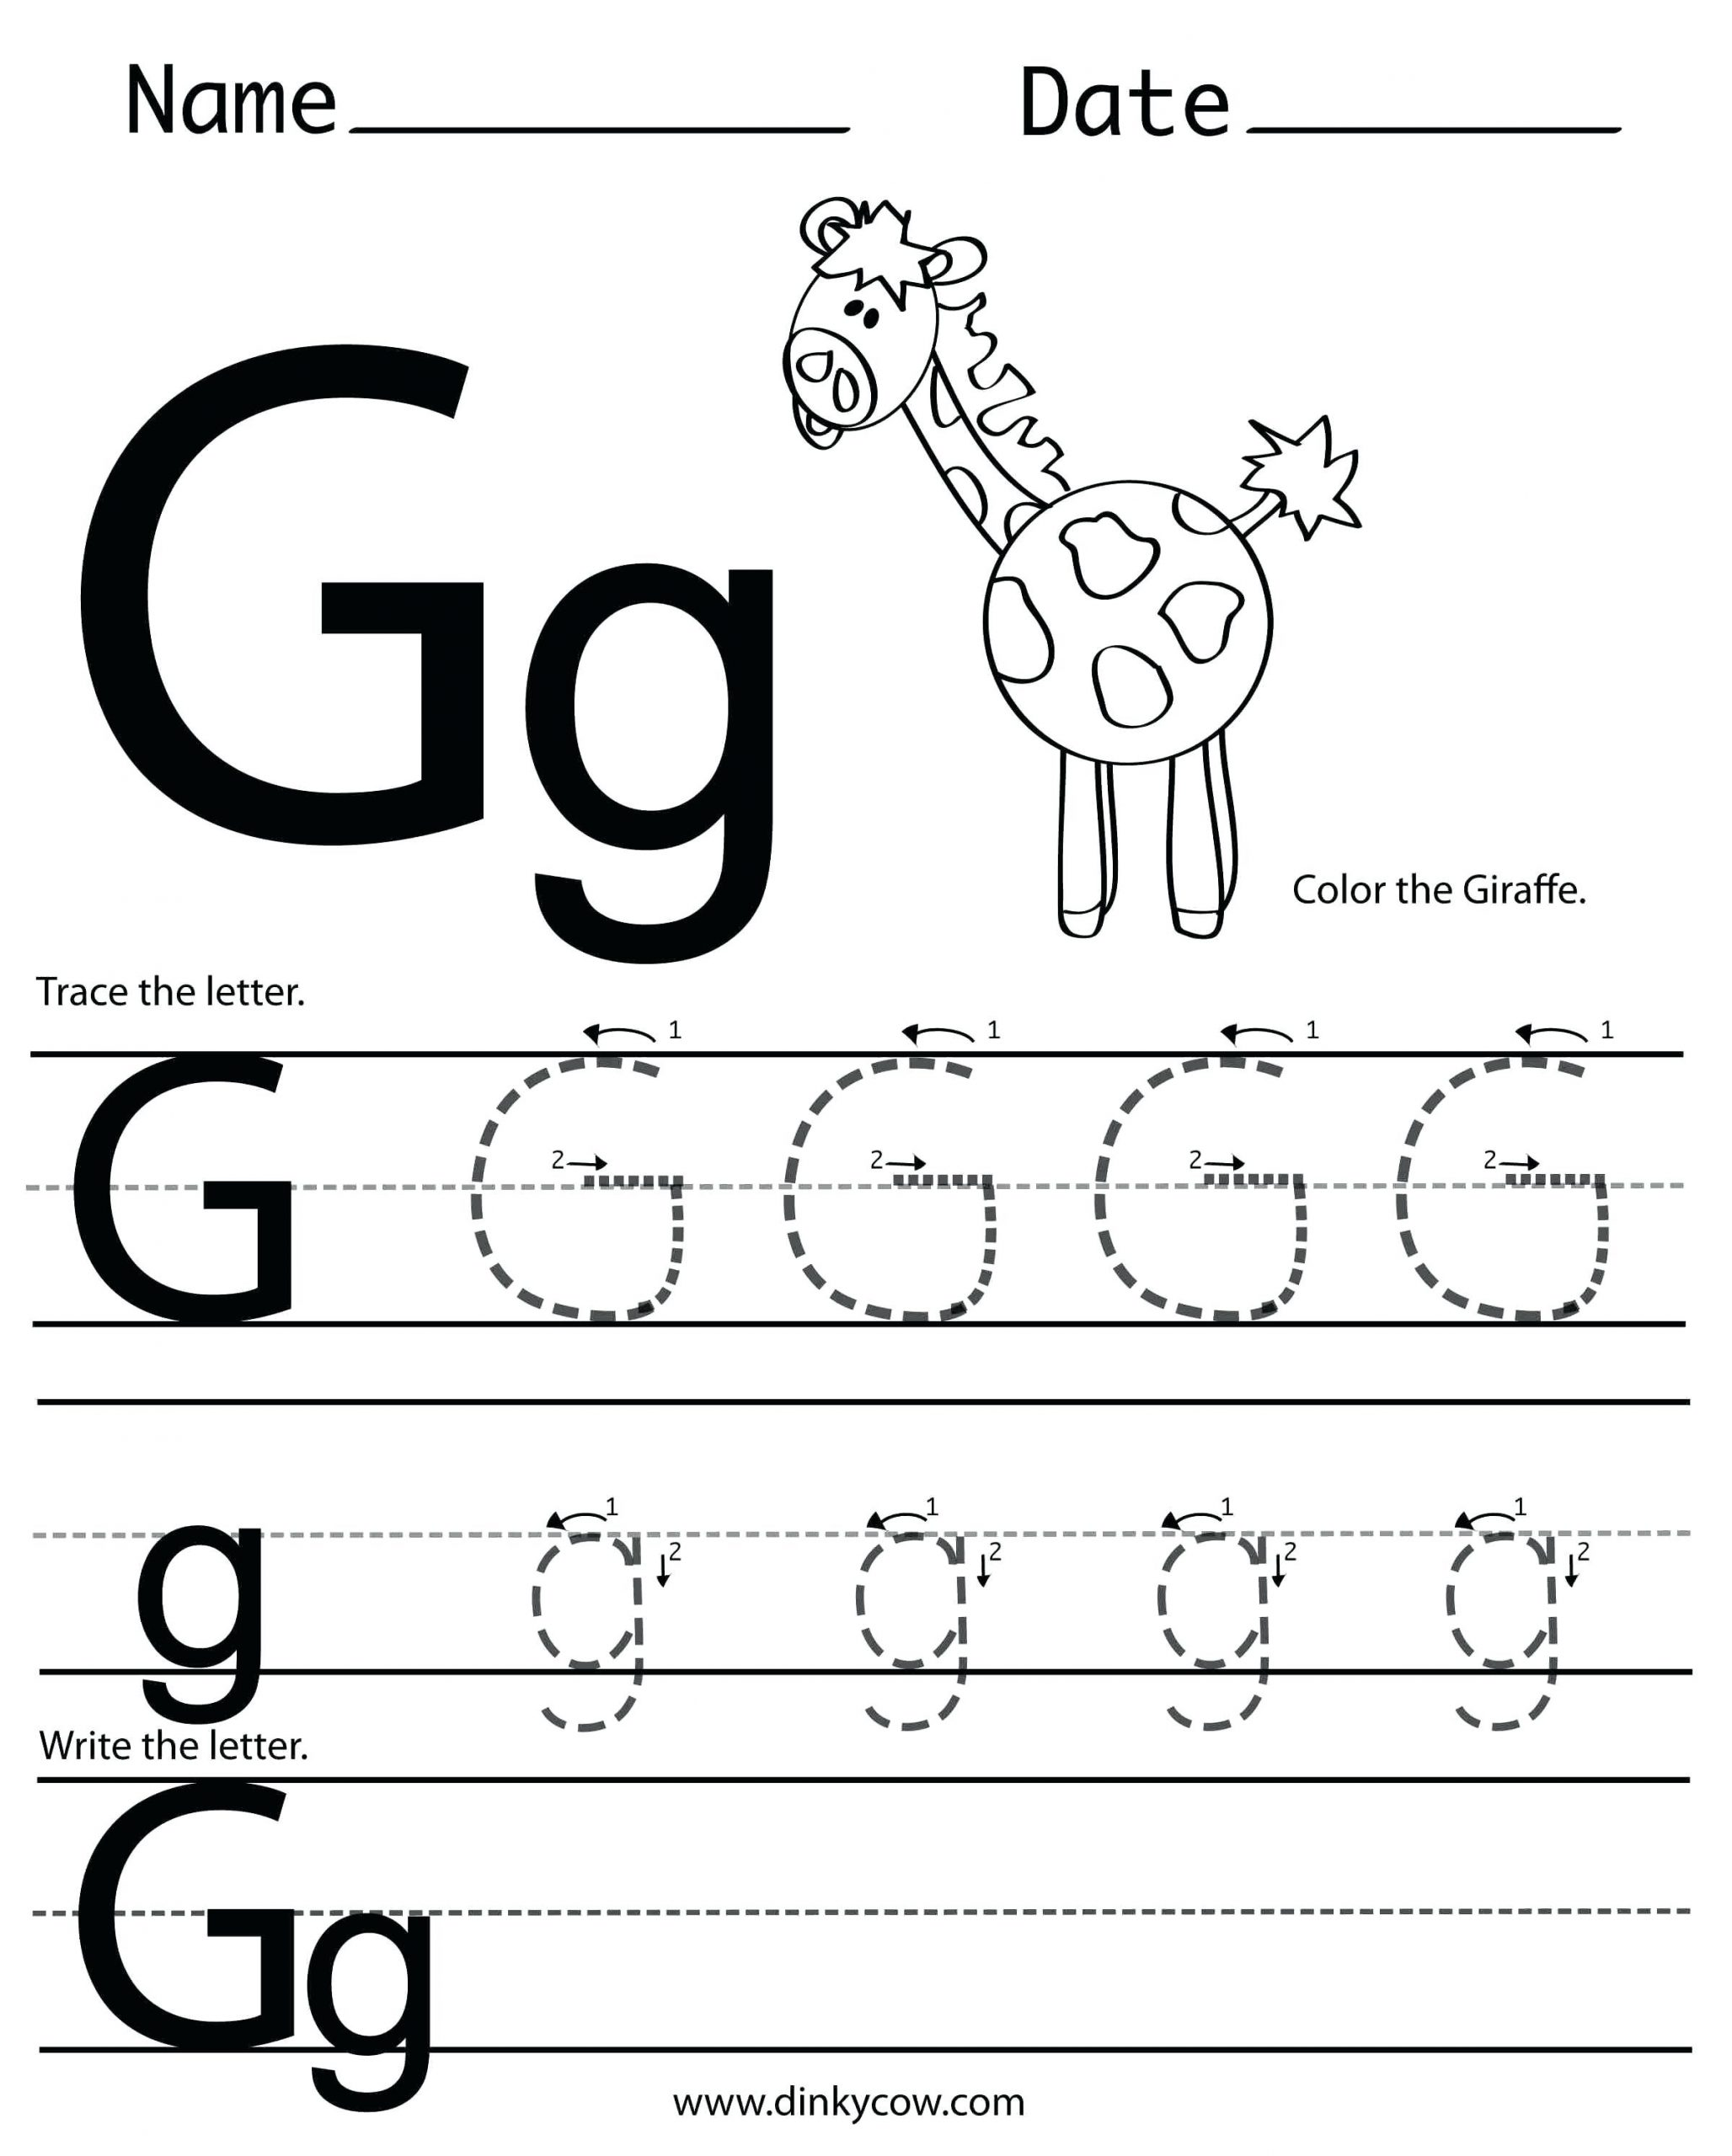 Letter G Worksheet Preschool Letter G Preschool Preschool Letter the Week G Craft